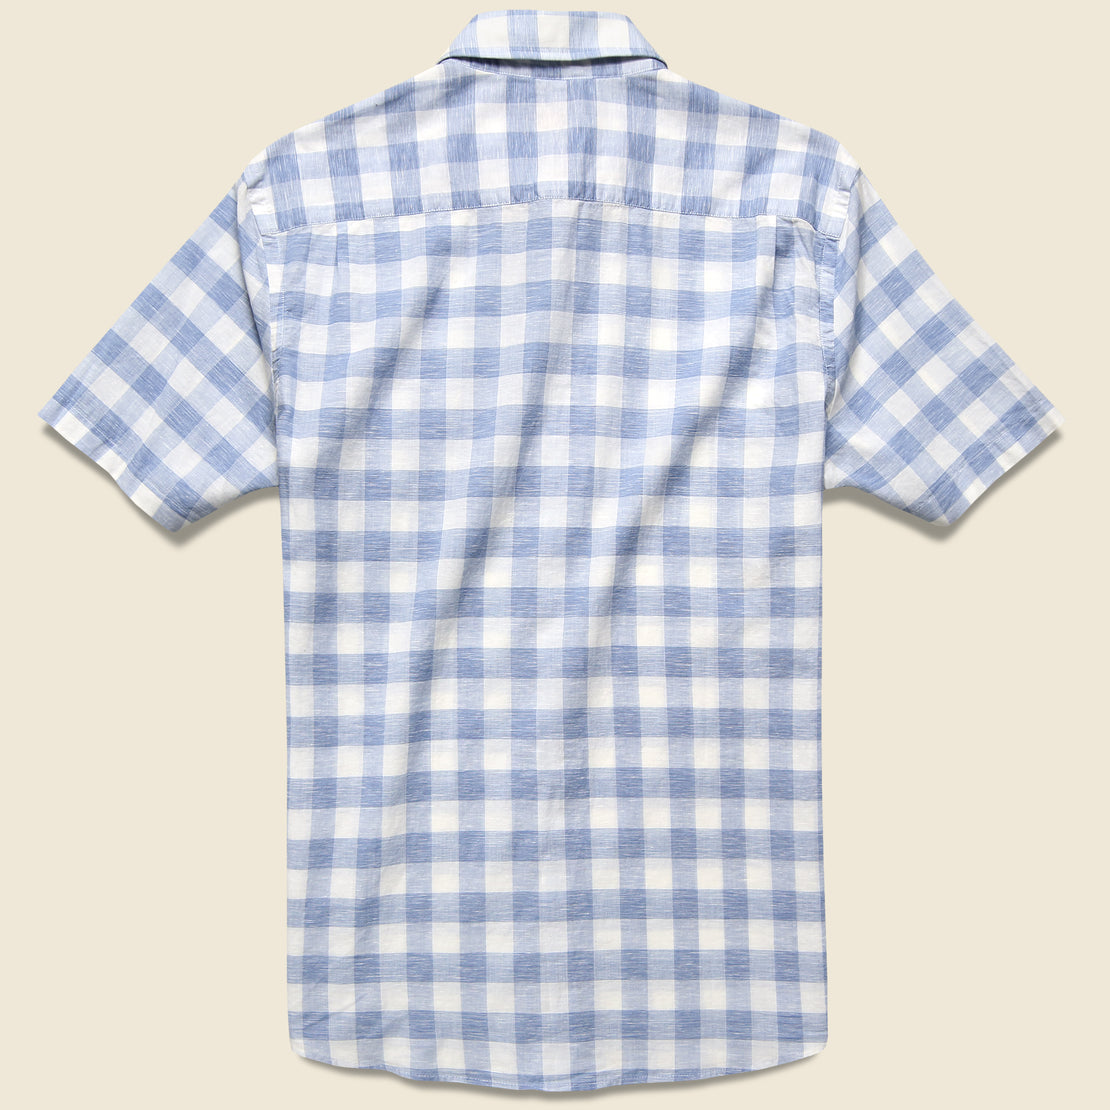 Cloud Blend Shirt - Blue Riptide